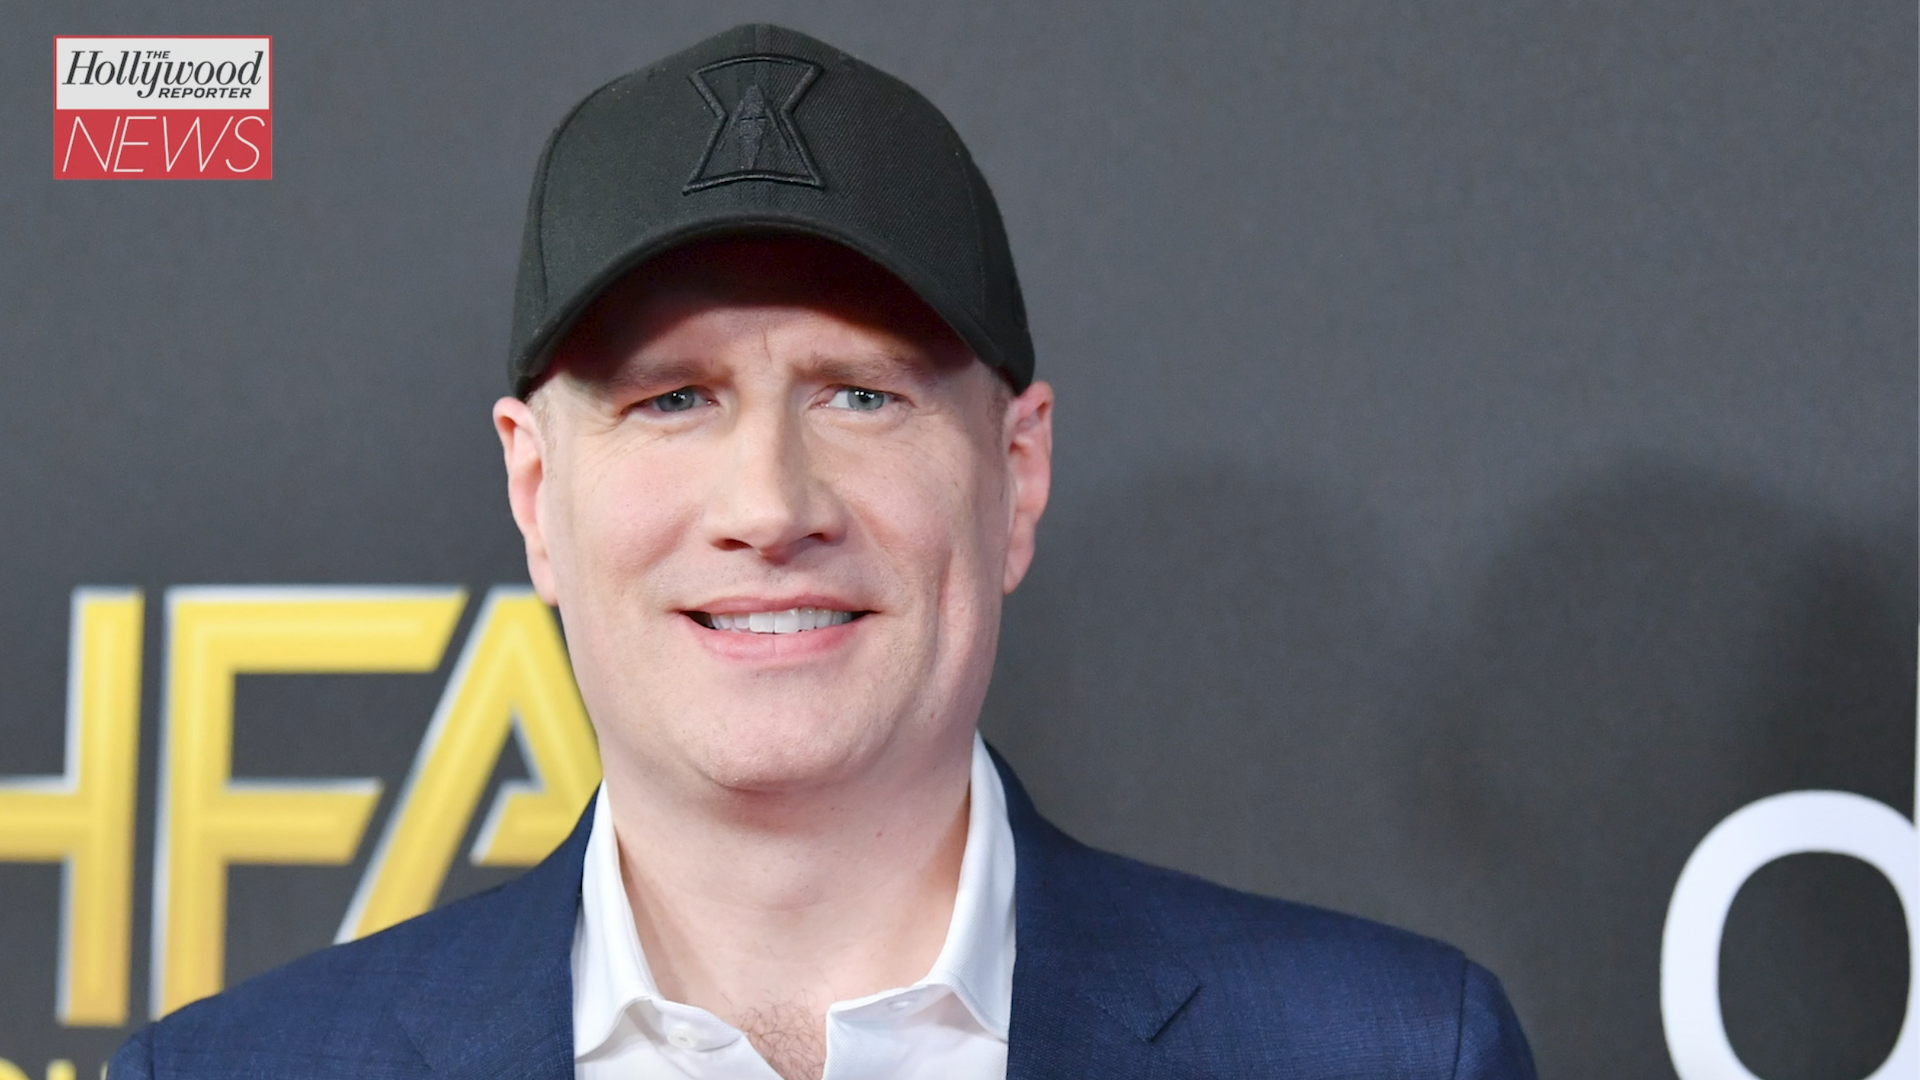 Kevin Feige On 'WandaVision' Second Season, 'Loki' and More Upcoming Marvel Series | THR News